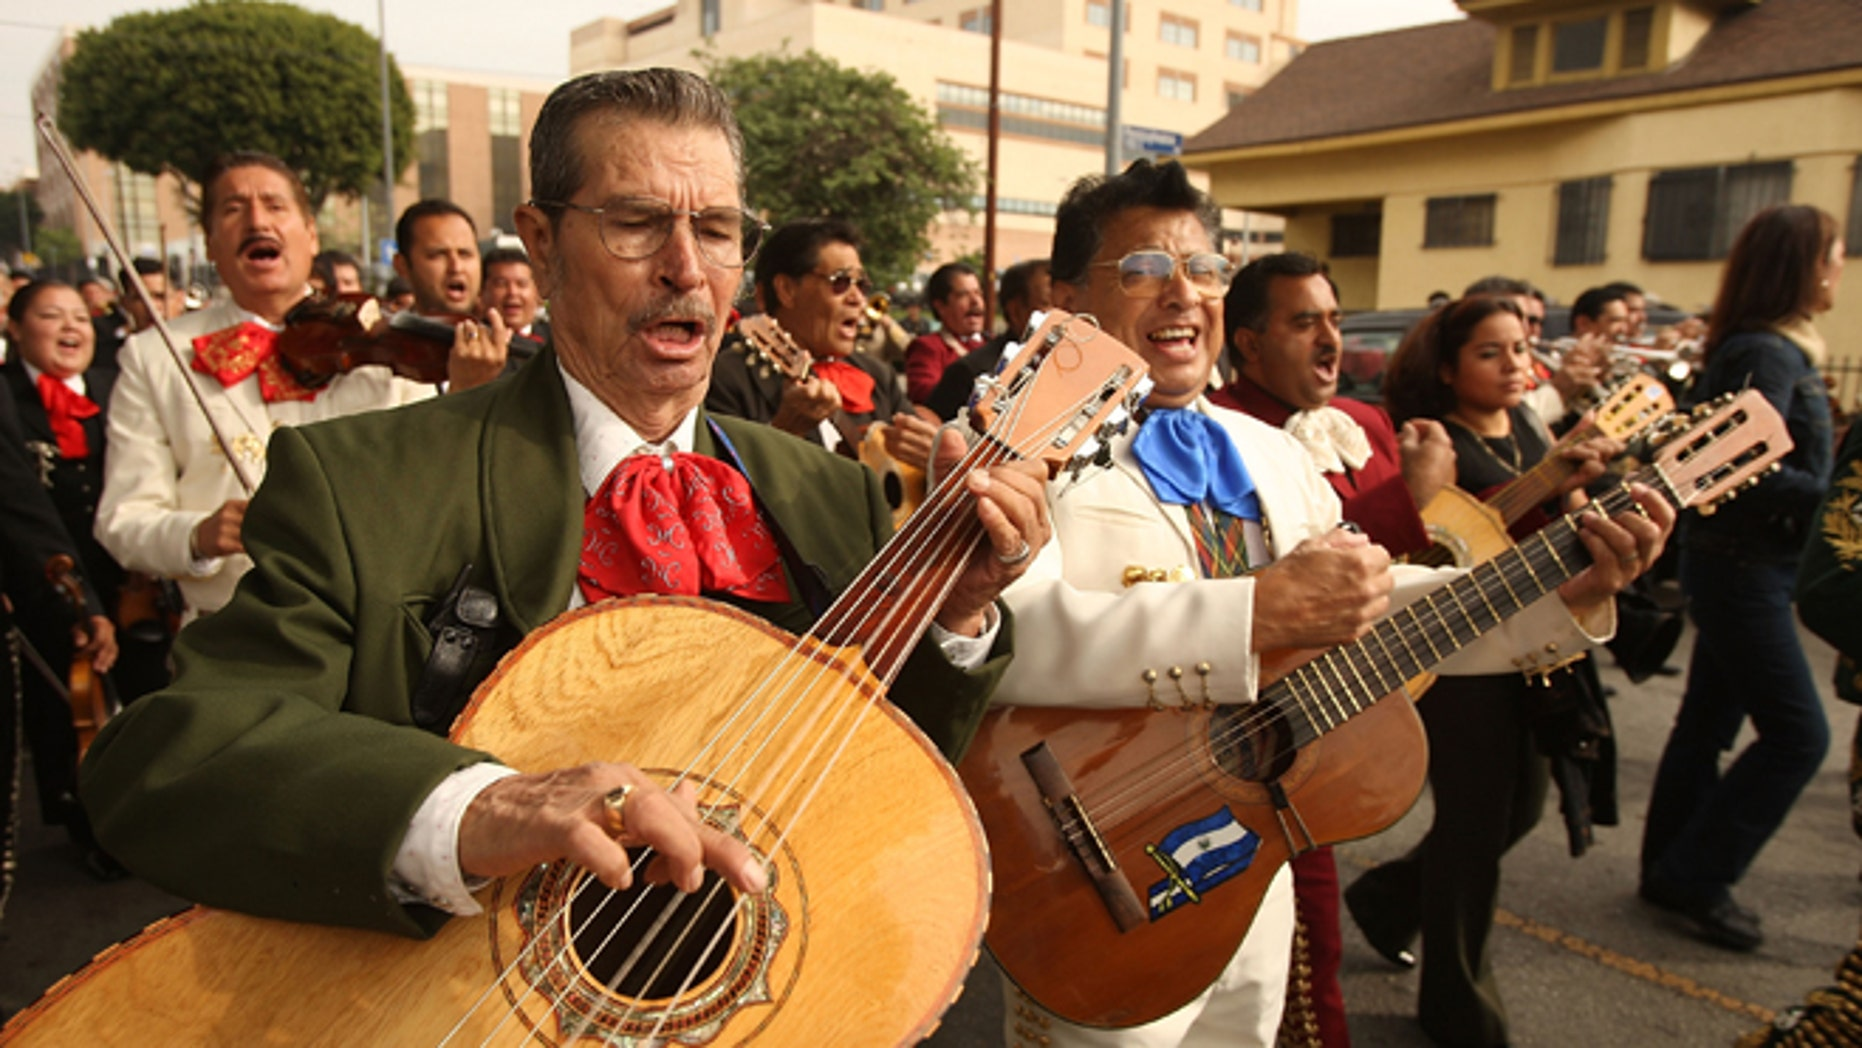 LOS ANGELES, CA - NOVEMBER 25:  Mariachis play as they march down a street during the annual procession and Mass in honor of the Feast Day of St. Cecilia, patron saint of music, on November 25, 2008 in the Boyle Heights neighborhood of Los Angeles, California. The procession takes place near Mariachi Plaza where Mexican musicians wait curb-side for customers to hire them. Mariachi, the best-known form of traditional Mexican music, is believed to have started in the nineteenth century in the Mexican state of Jalisco, supposedly in the town of Cocula.  (Photo by David McNew/Getty Images)